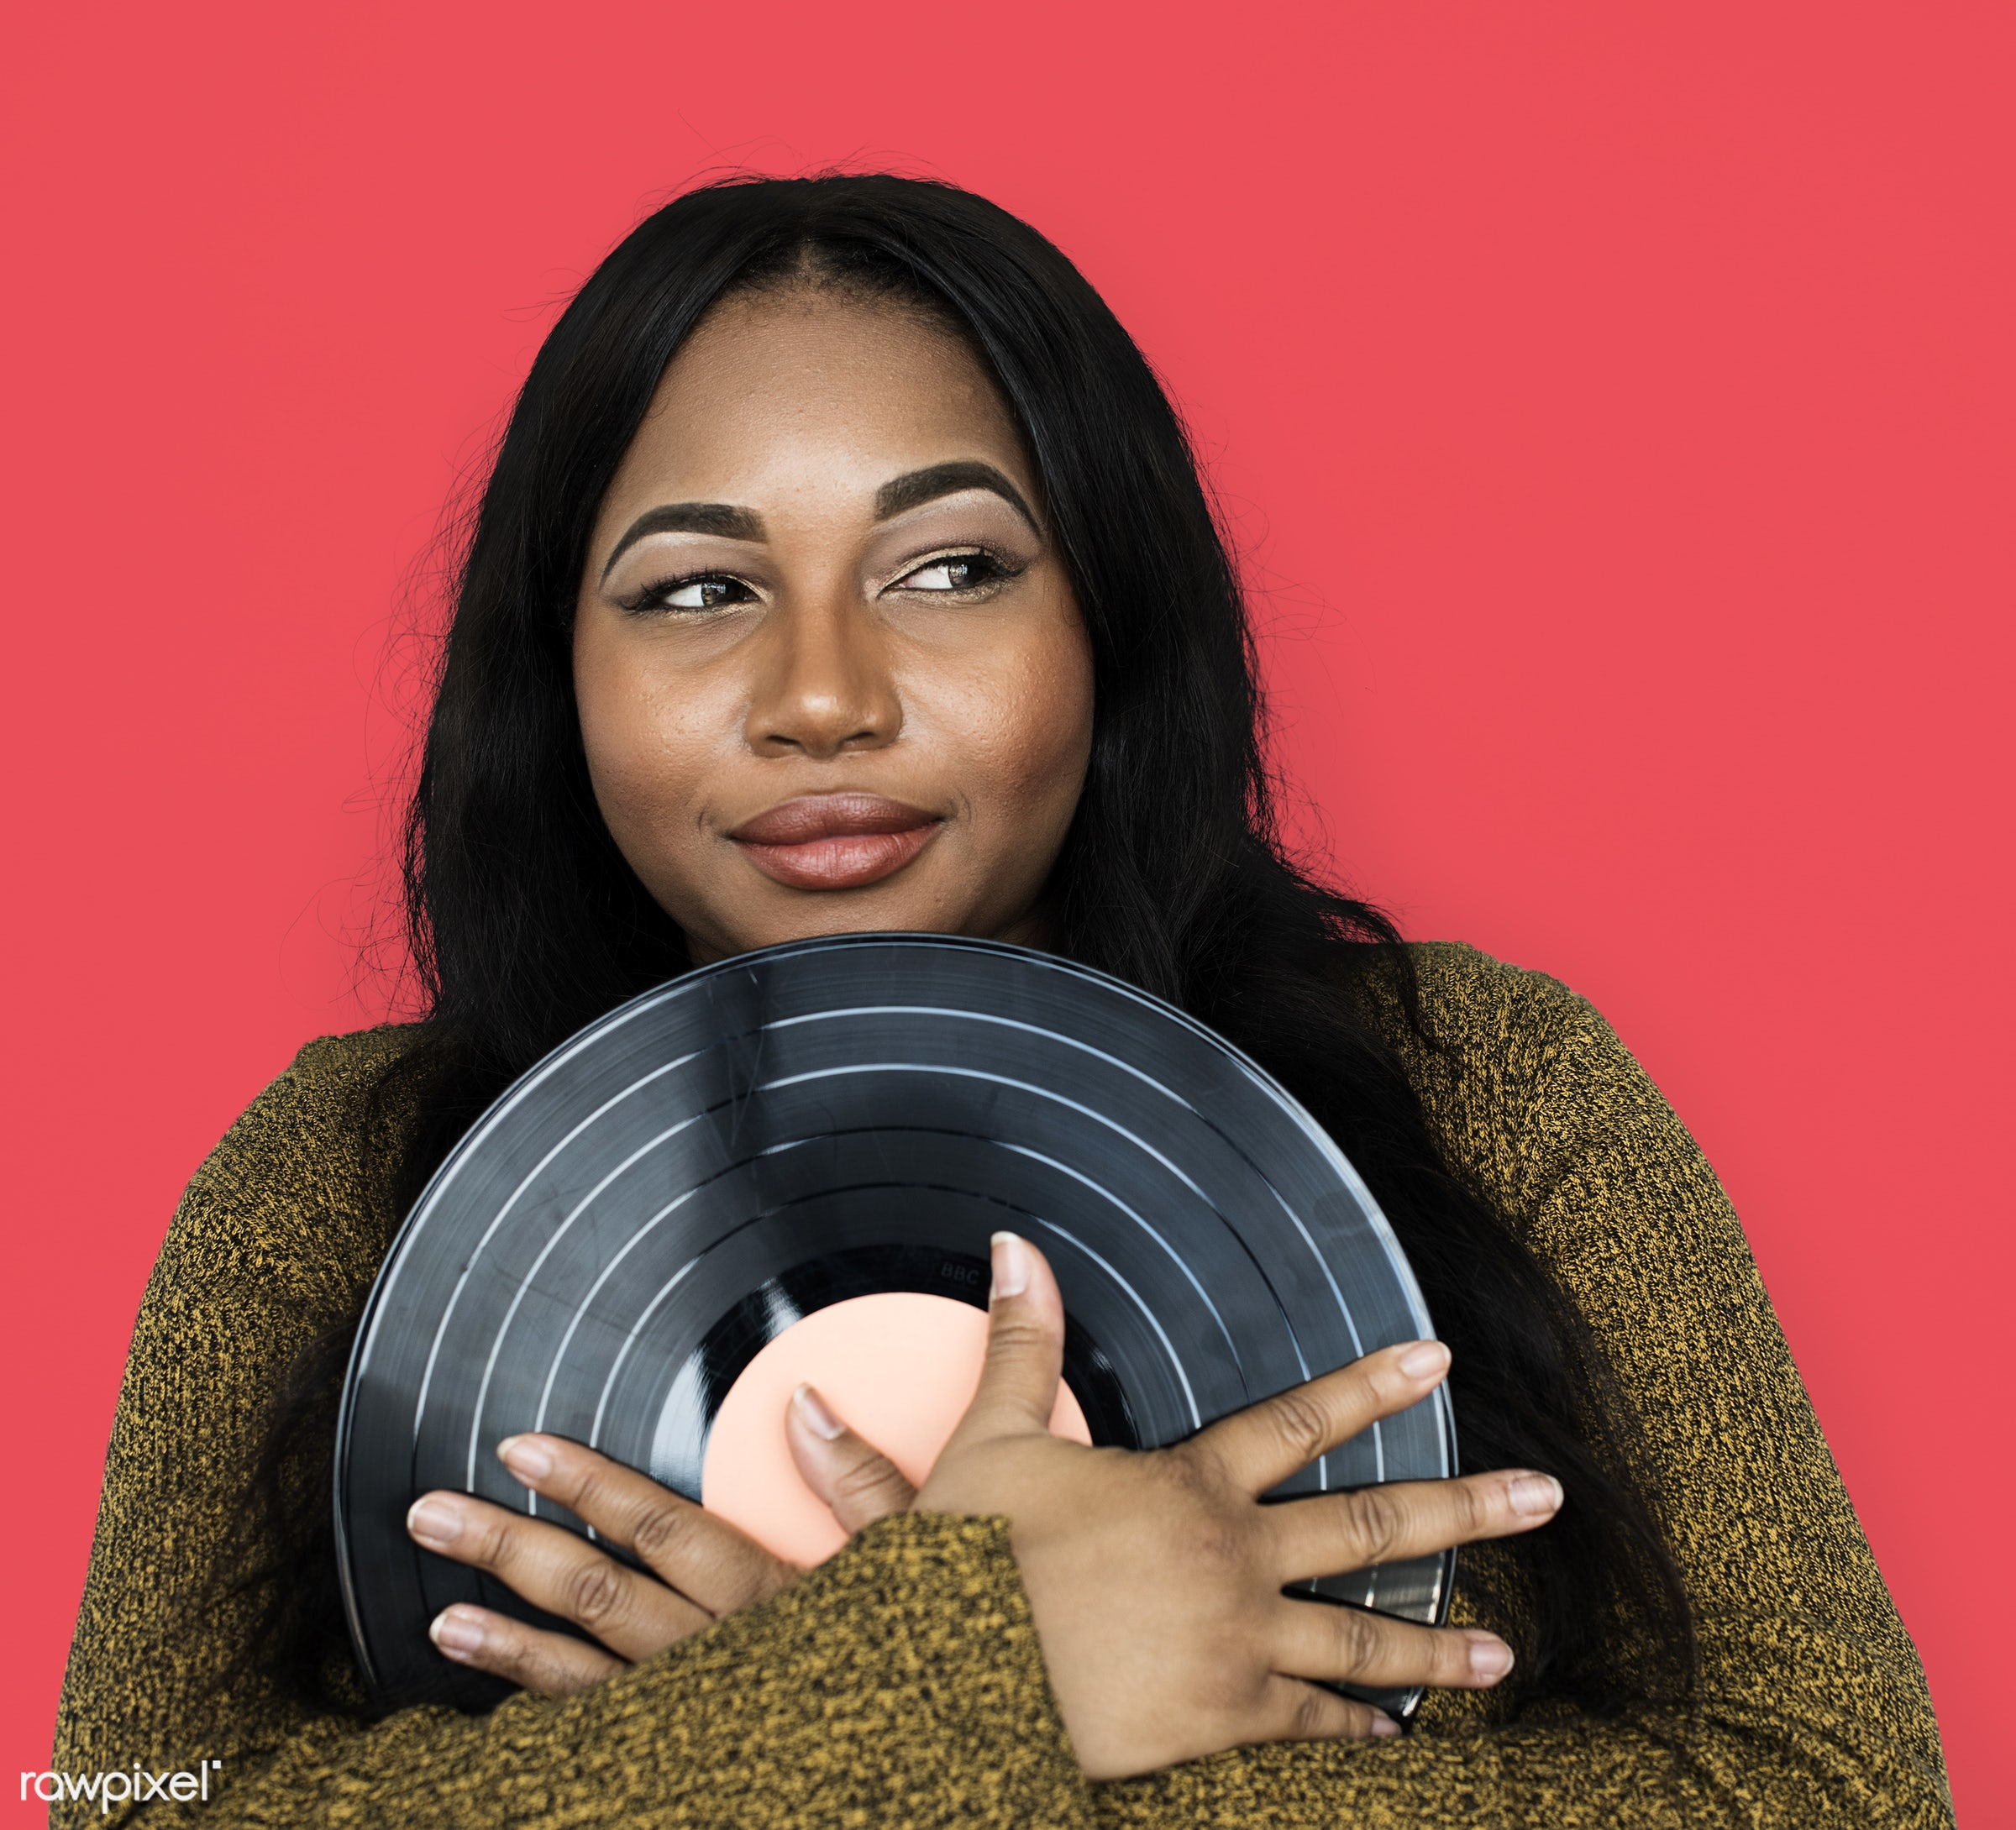 expression, person, retro, recreation, people, race, disc, ancient, woman, vinyl, activity, black, music, isolated, vintage...